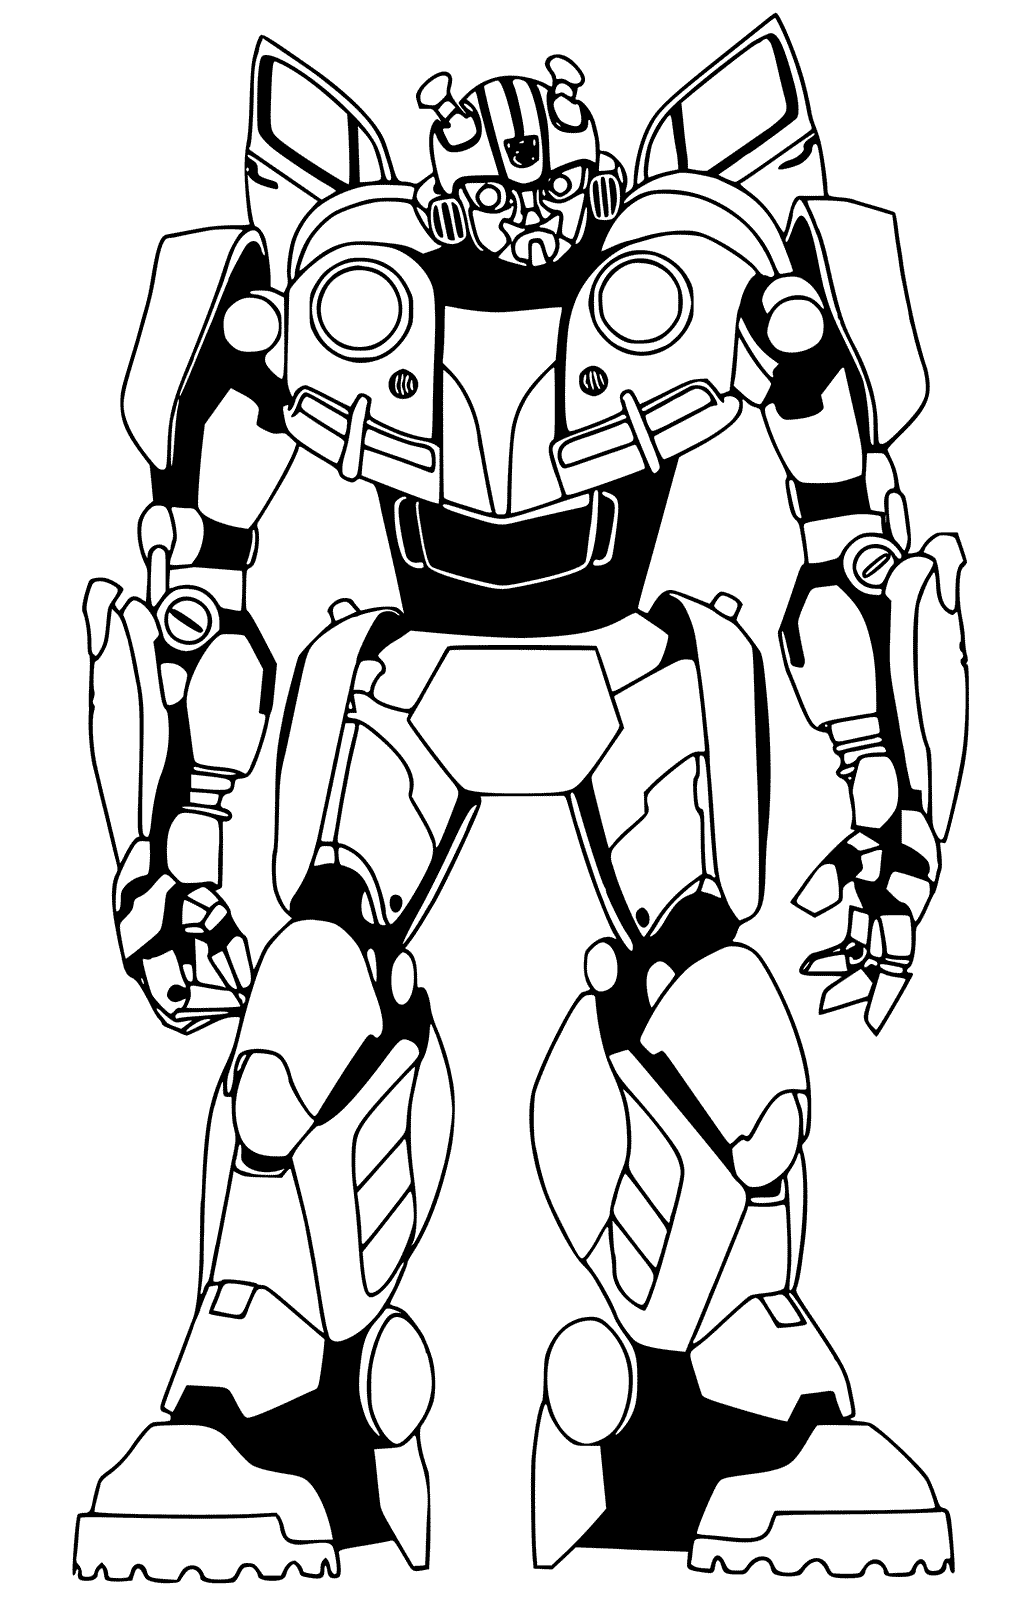 transformers bumblebee coloring pages bumblebee transformer coloring pages printable clipart best coloring pages bumblebee transformers